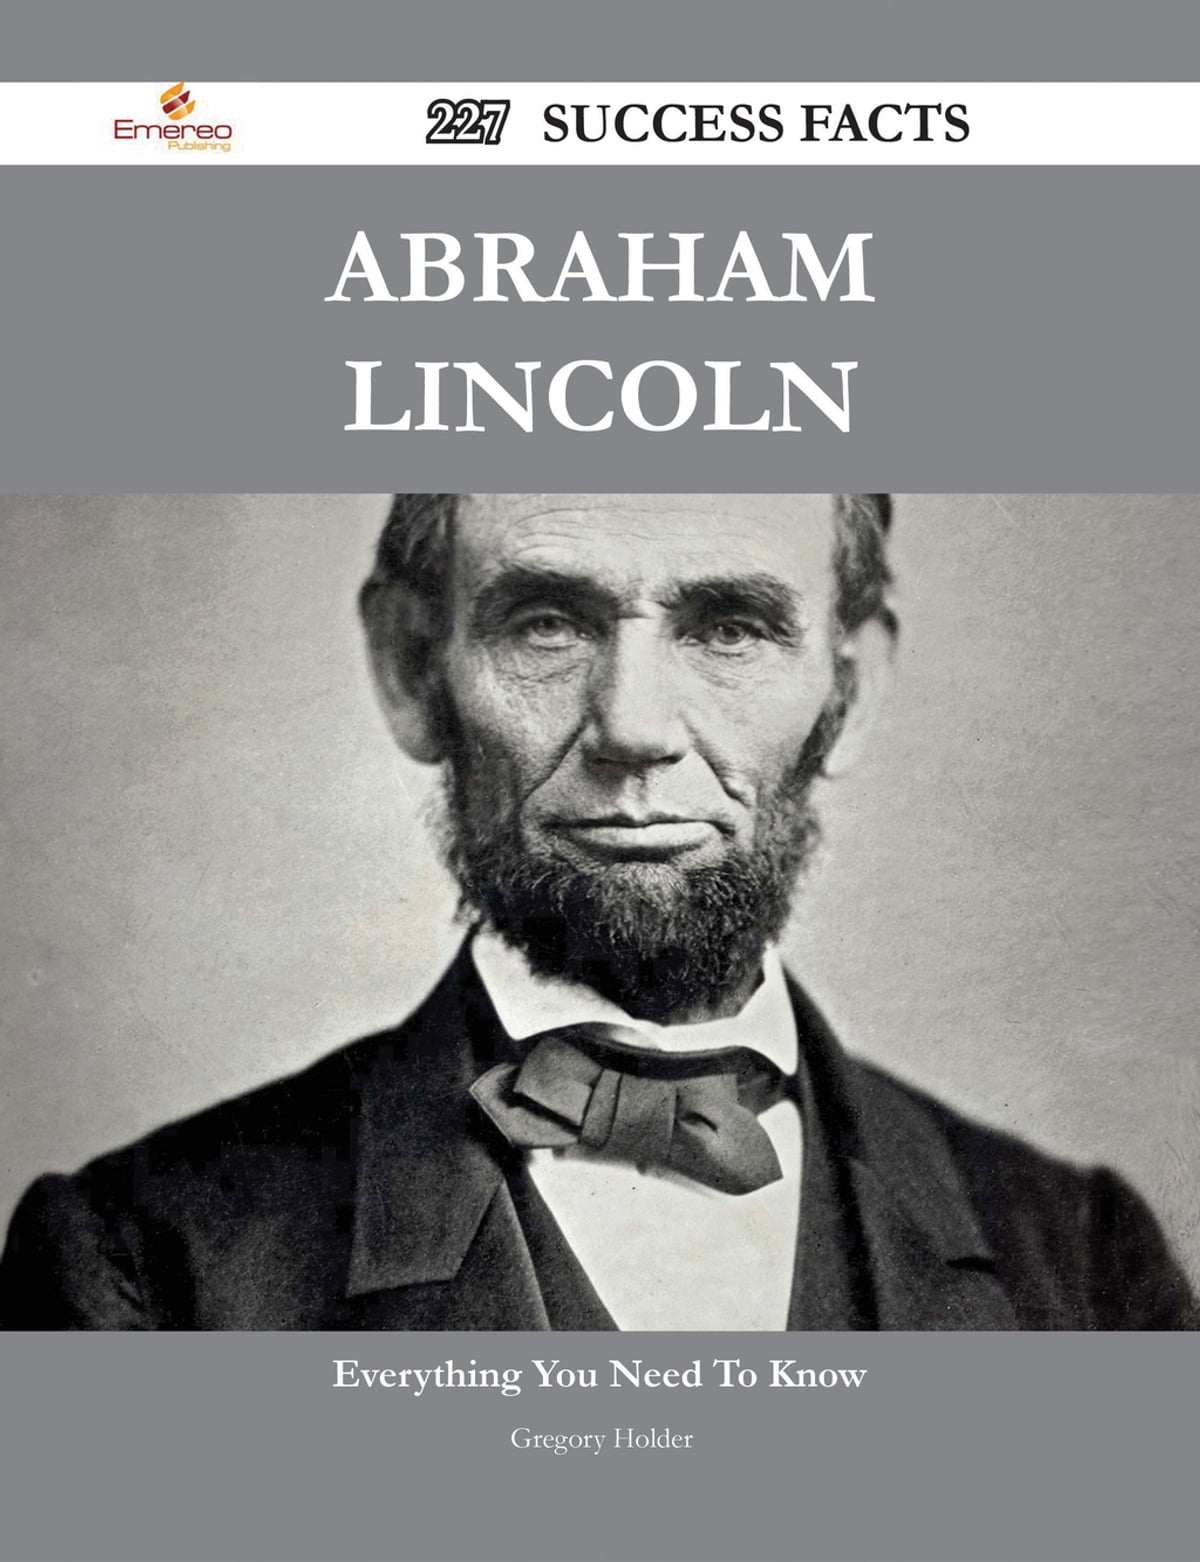 Abraham Lincoln Facts And Information